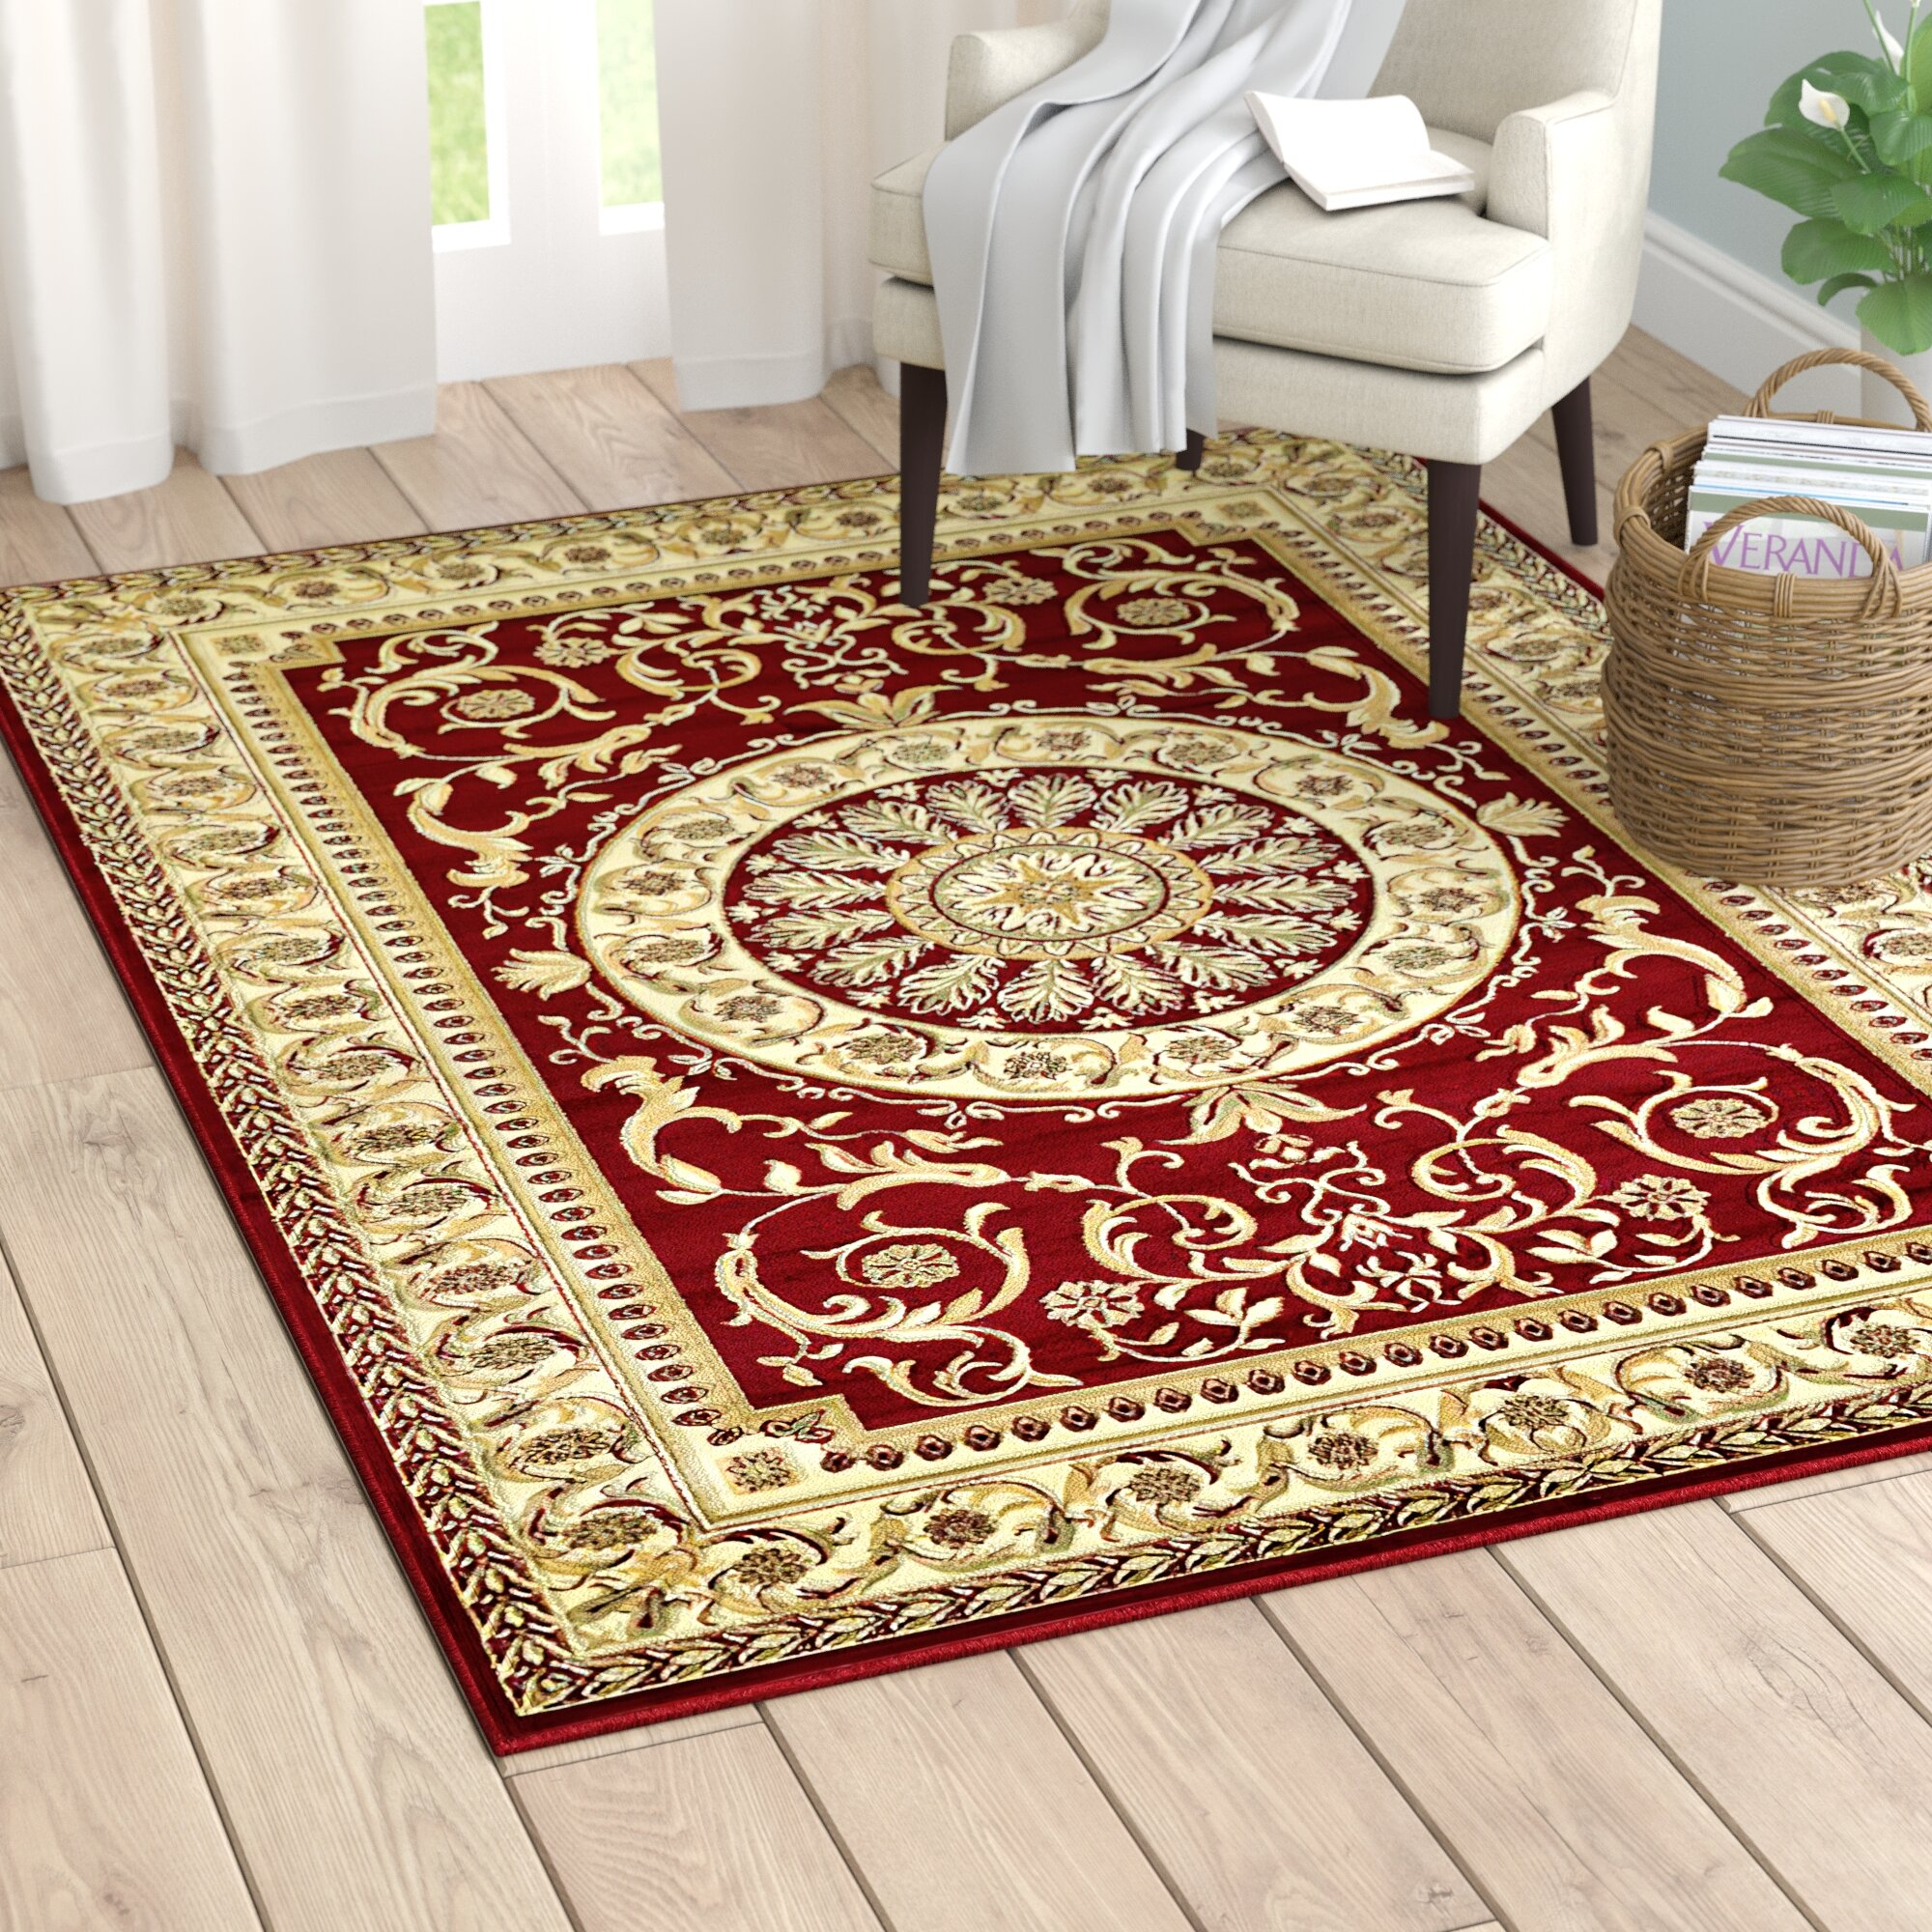 Oriental Red Area Rugs You Ll Love In 2021 Wayfair